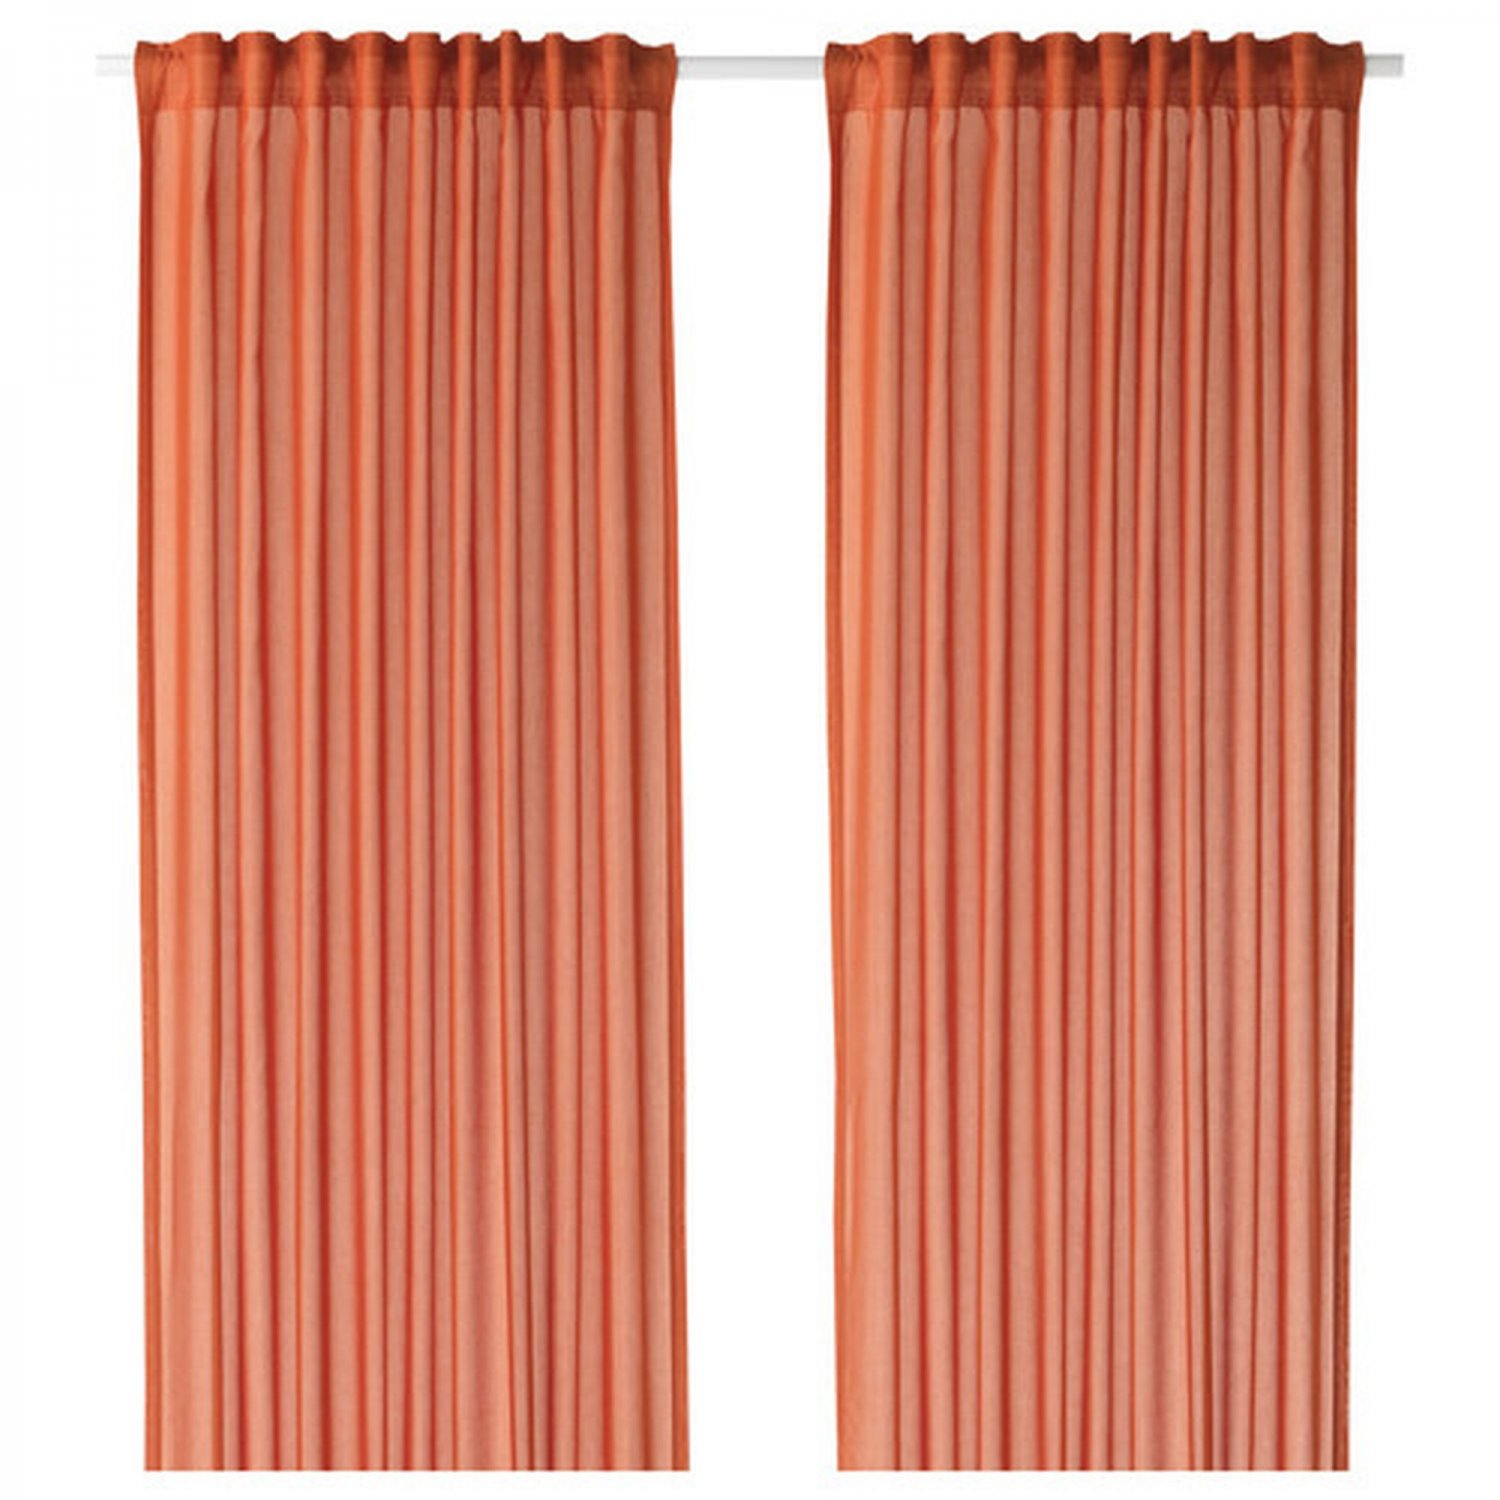 Ikea vivan curtains drapes orange 2 panels ice 98 length for Ikea curtain rods uk